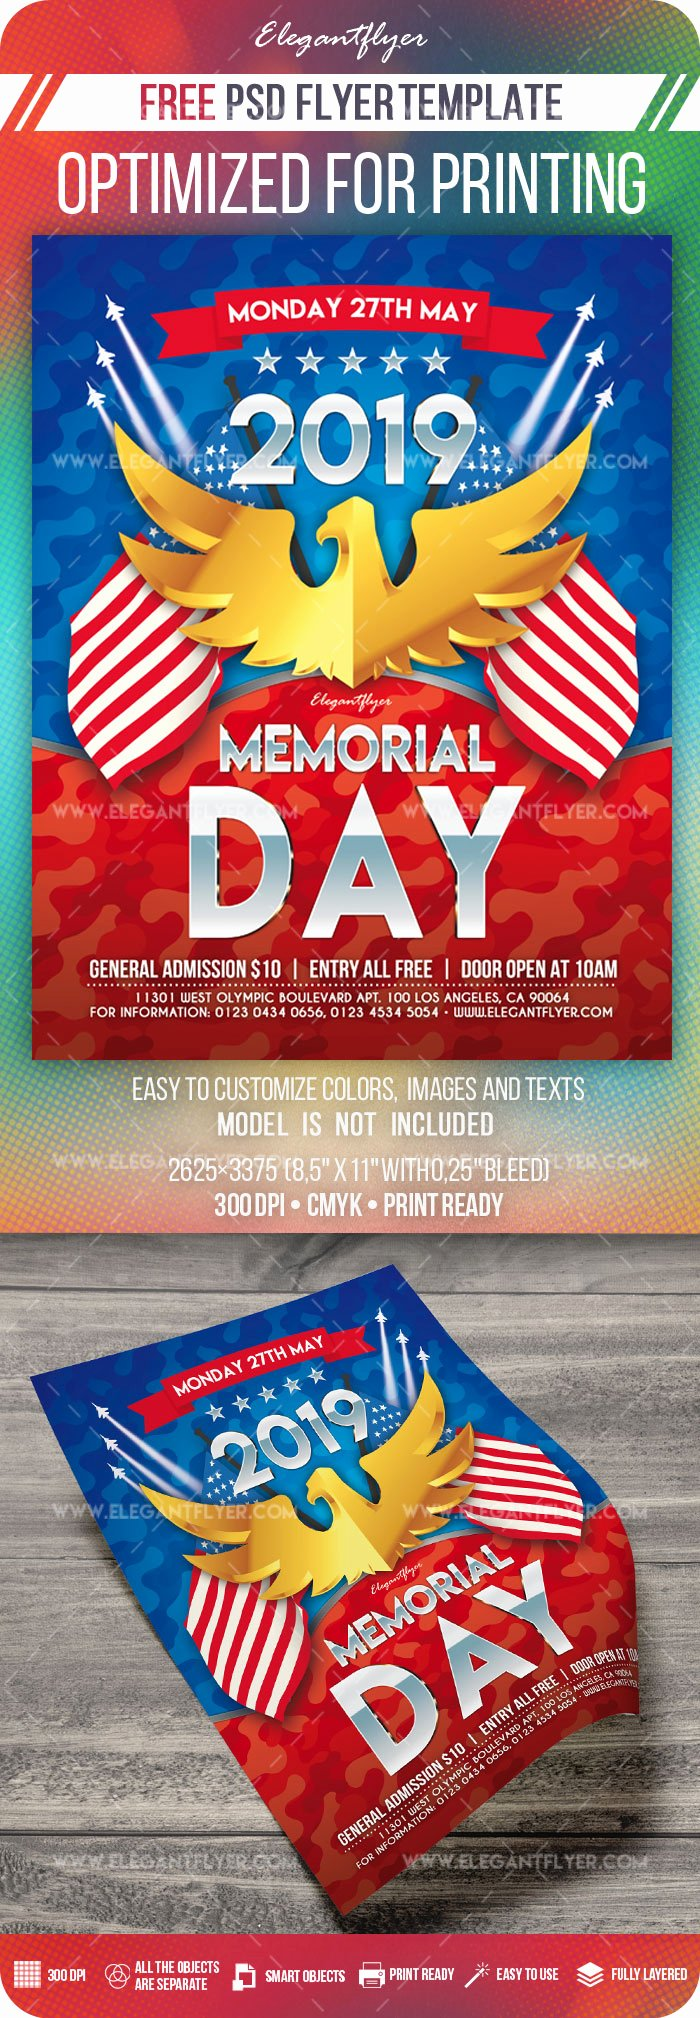 Memorial Day Flyer Template Free Awesome Memorial Day – Free Flyer Psd Template – by Elegantflyer